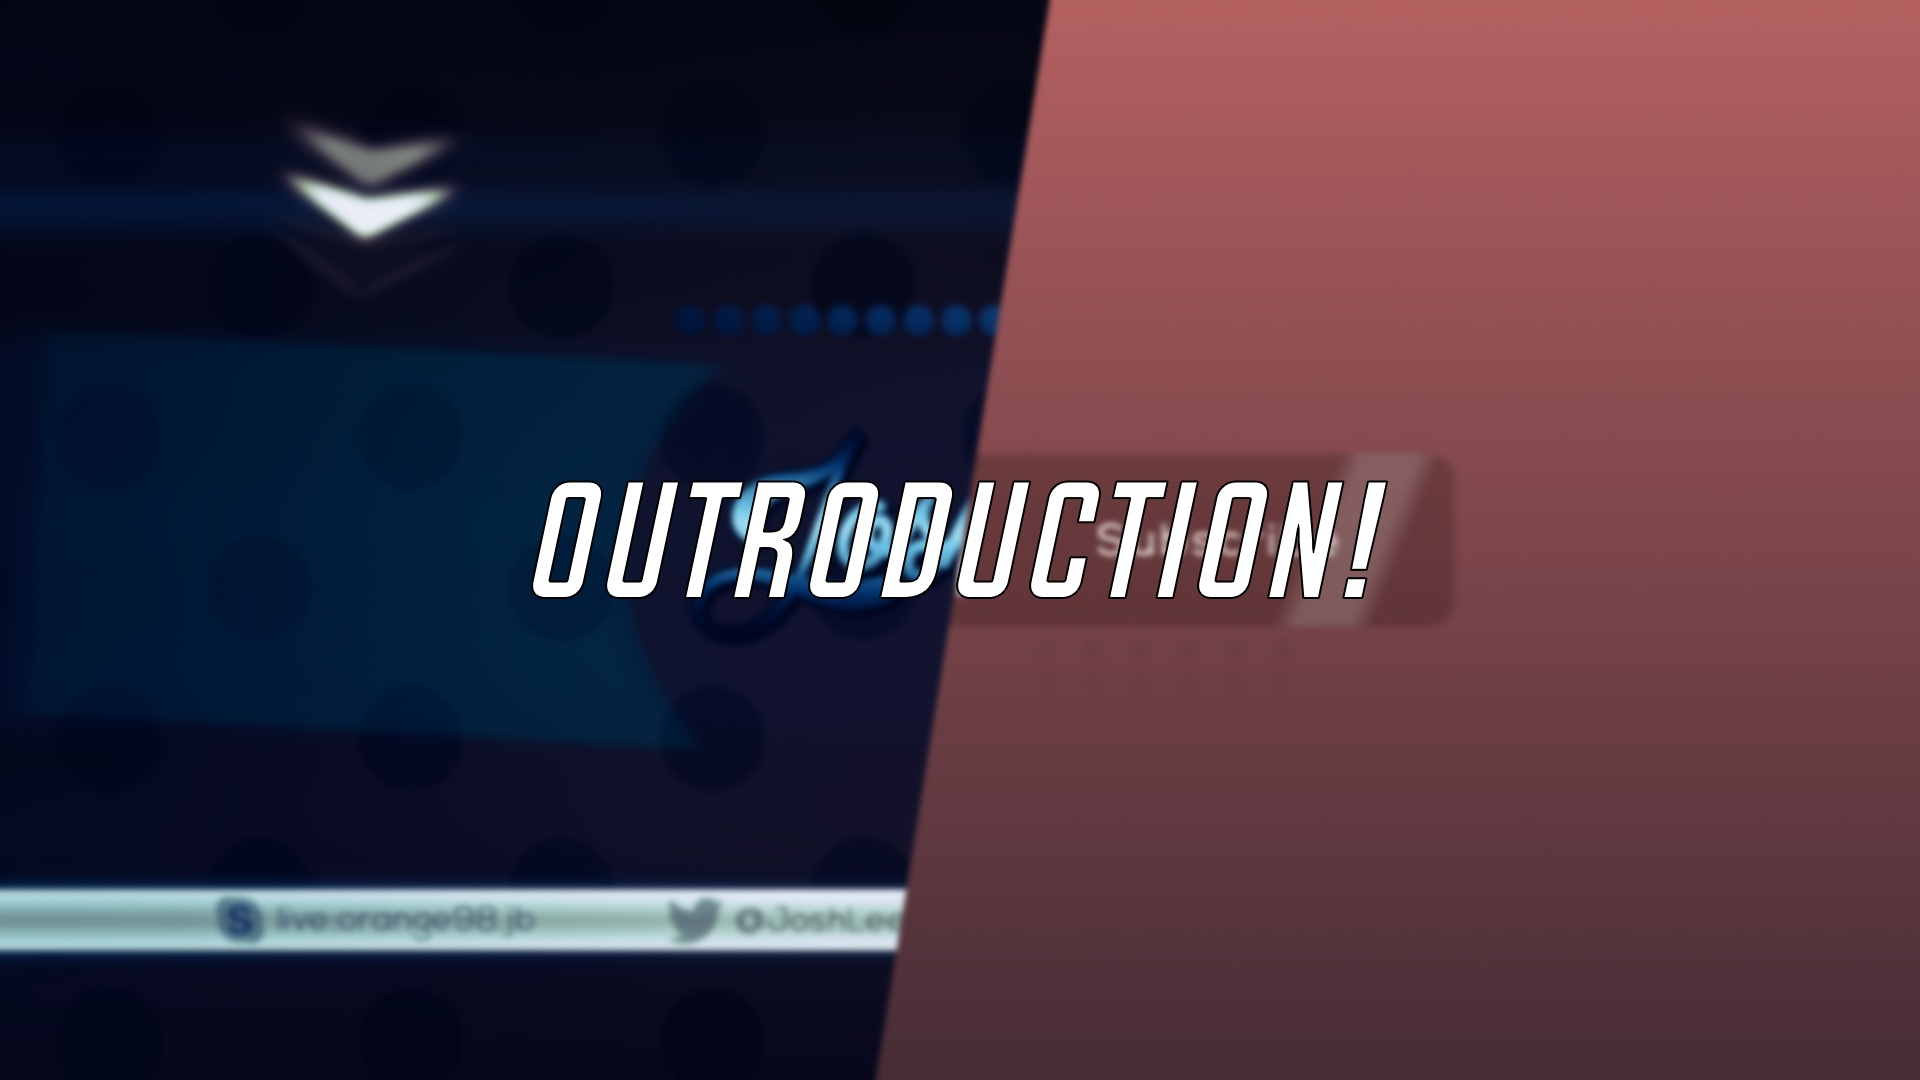 Outroduction!